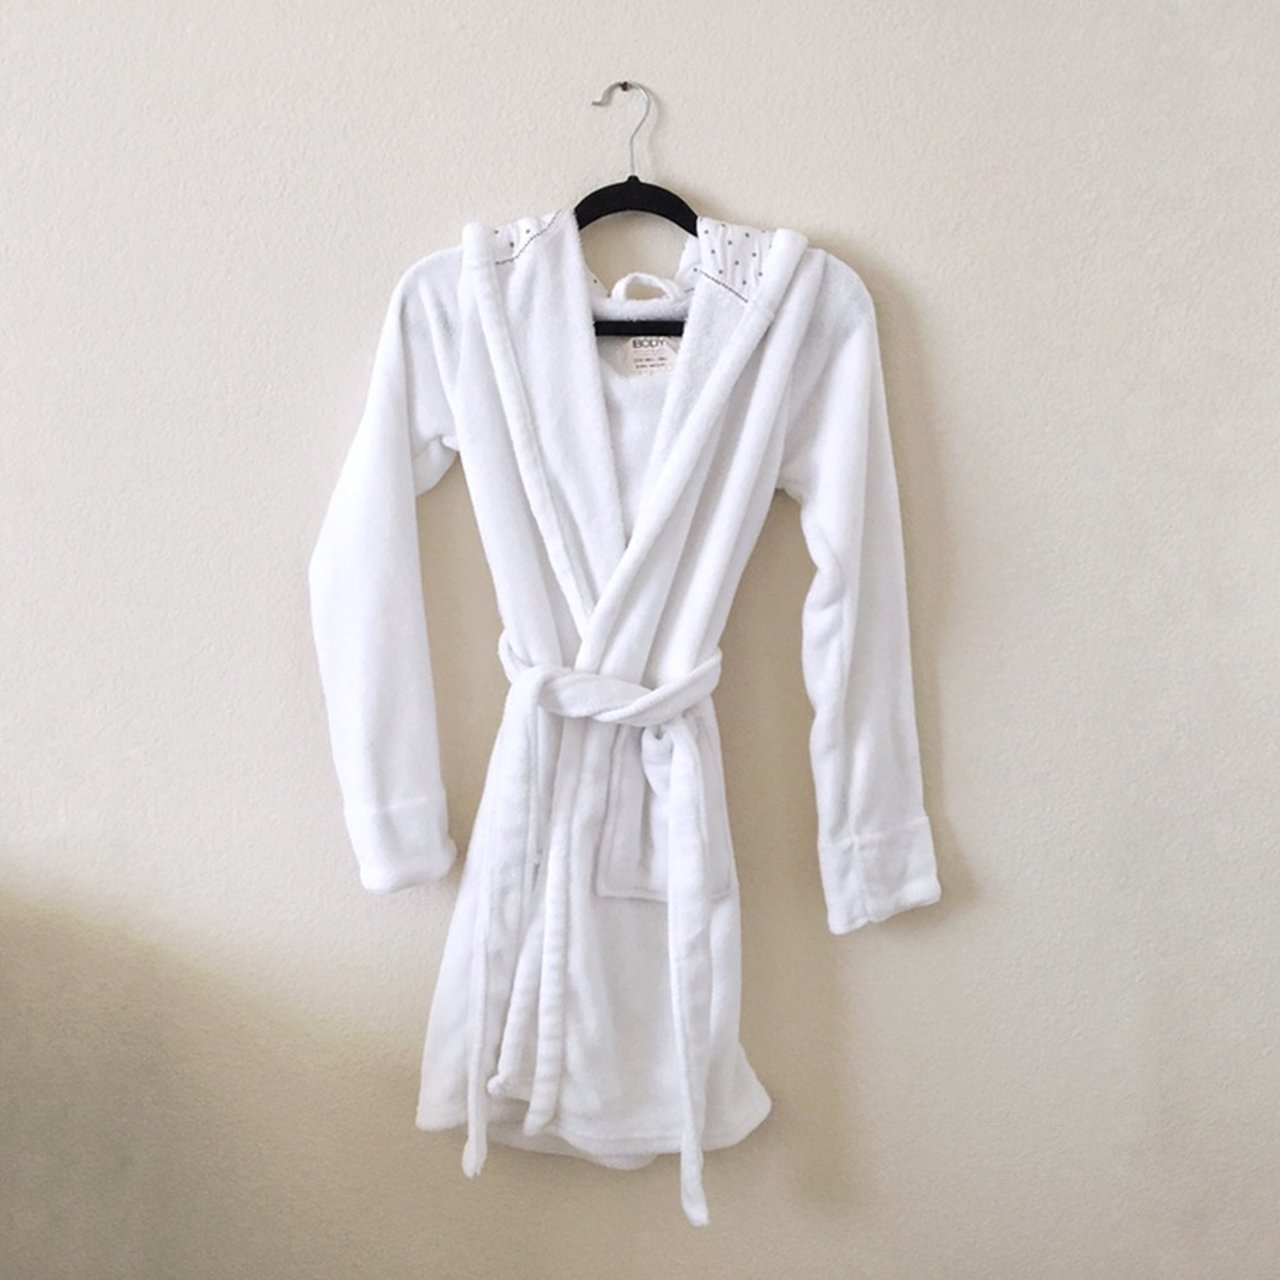 Cotton On White Hooded Robe Also selling one in gray-ish 2 - Depop 534fda075